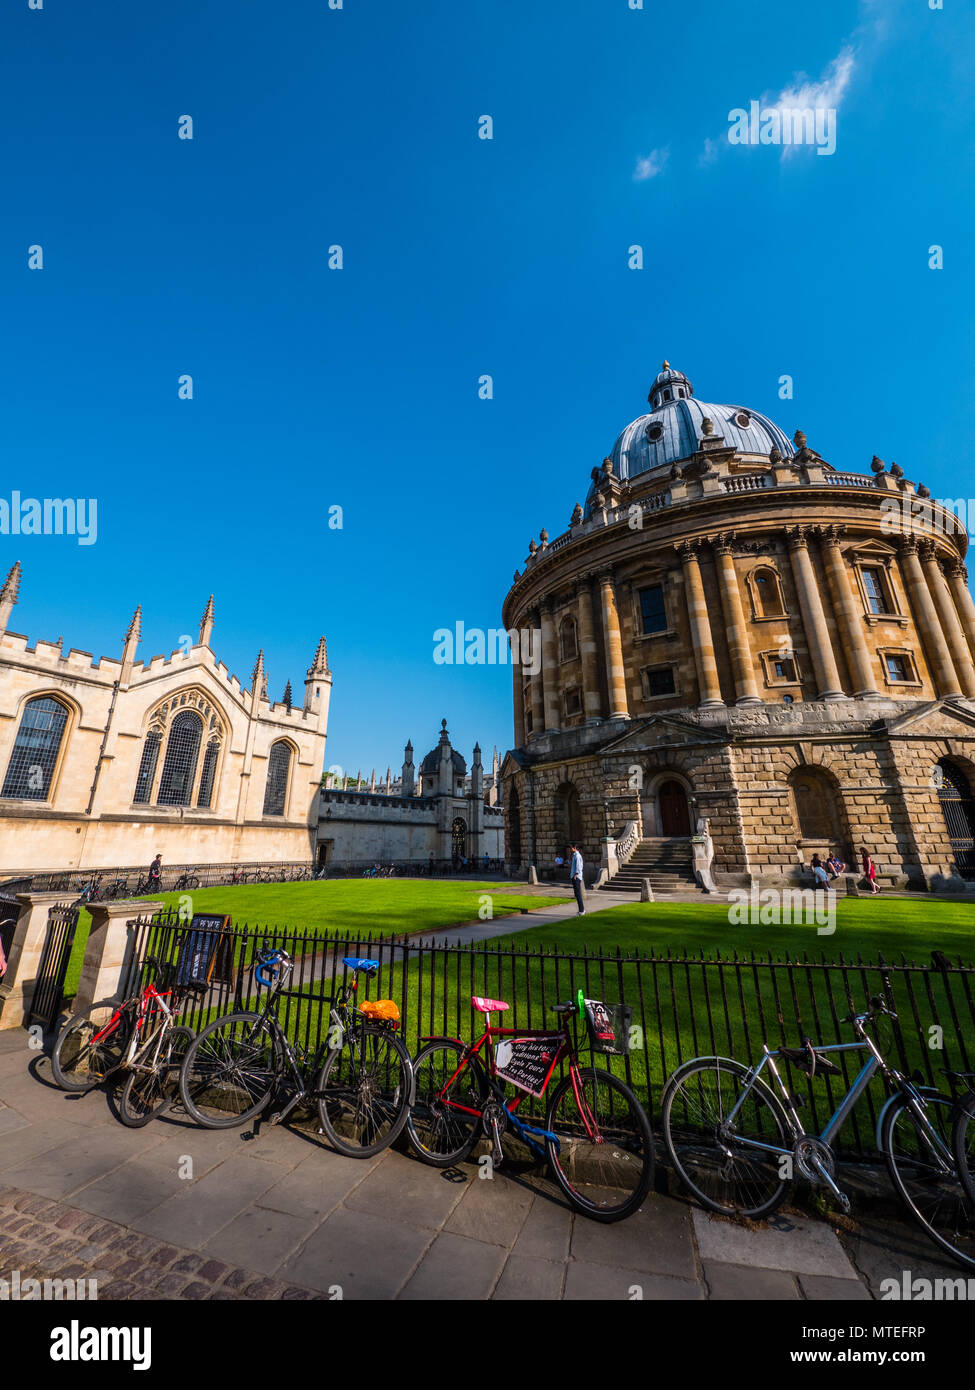 Bicycles on Railings Outside Radcliffe Camera, with all Souls College to the left, University of Oxford, Oxford, Oxfordshire, England, UK, GB. - Stock Image